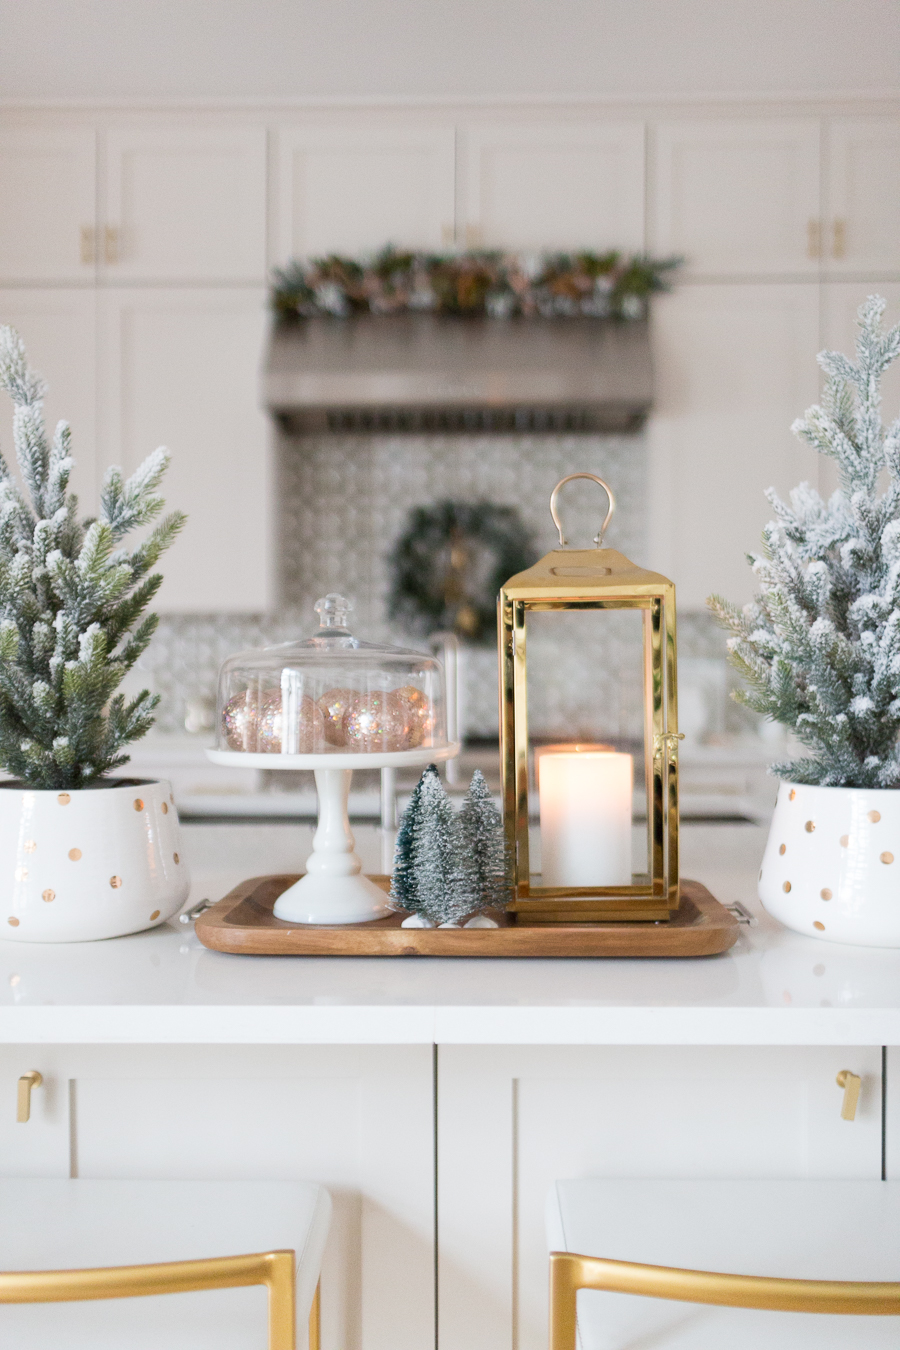 Budget Friendly Holiday Decor from Walmart wood tray with a gold lantern and pioneer woman white cakestand on top of a large quartz waterfall island